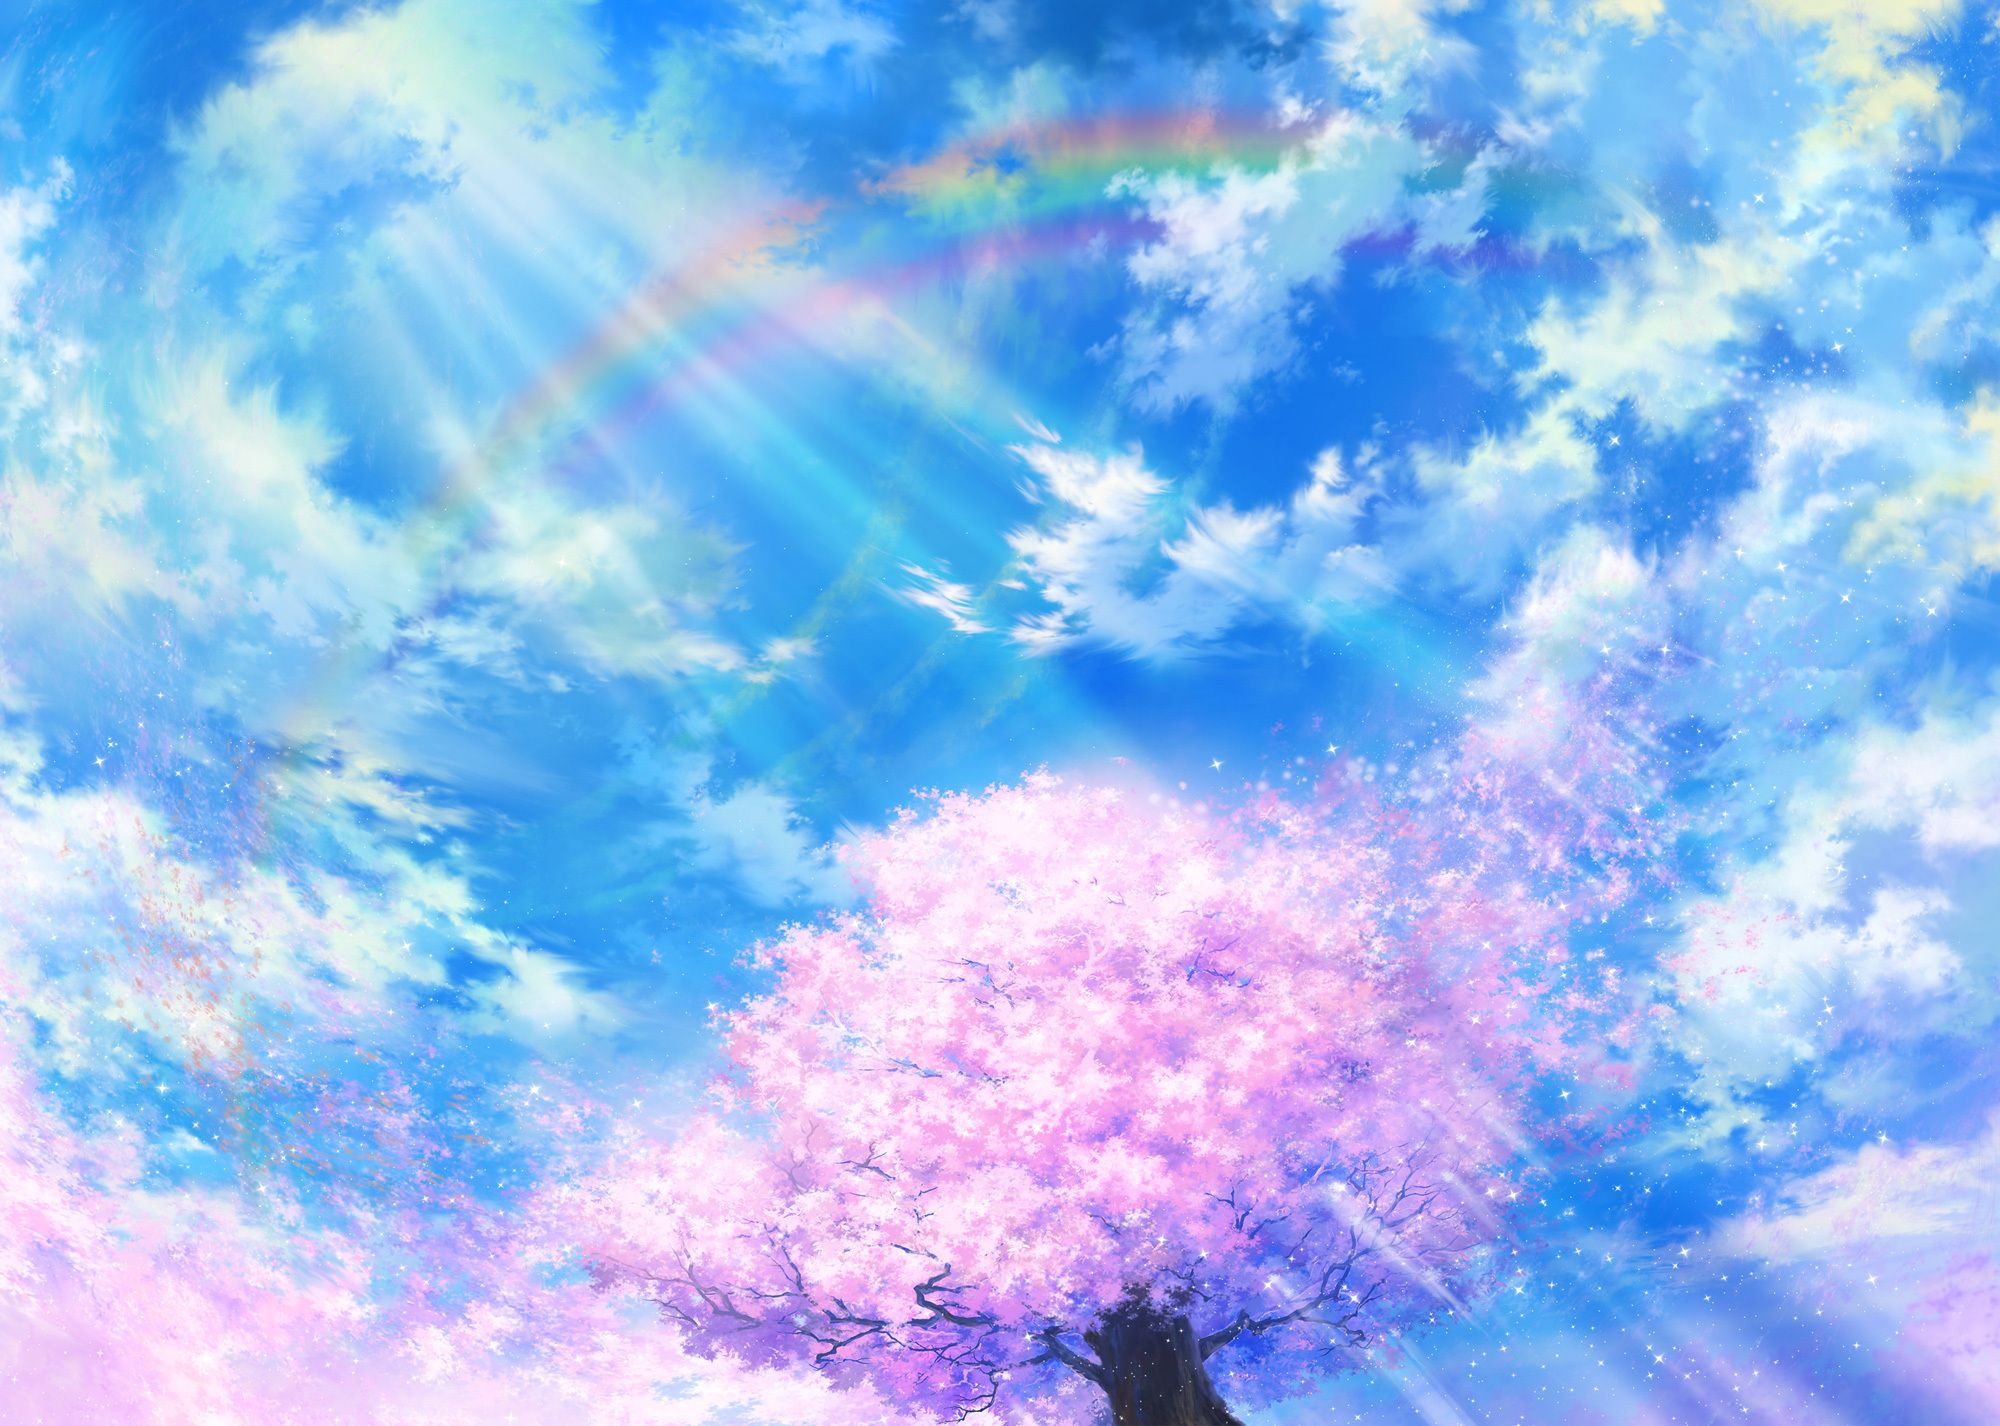 Anime Girl Falling From The Sky - Anime Wallpapers